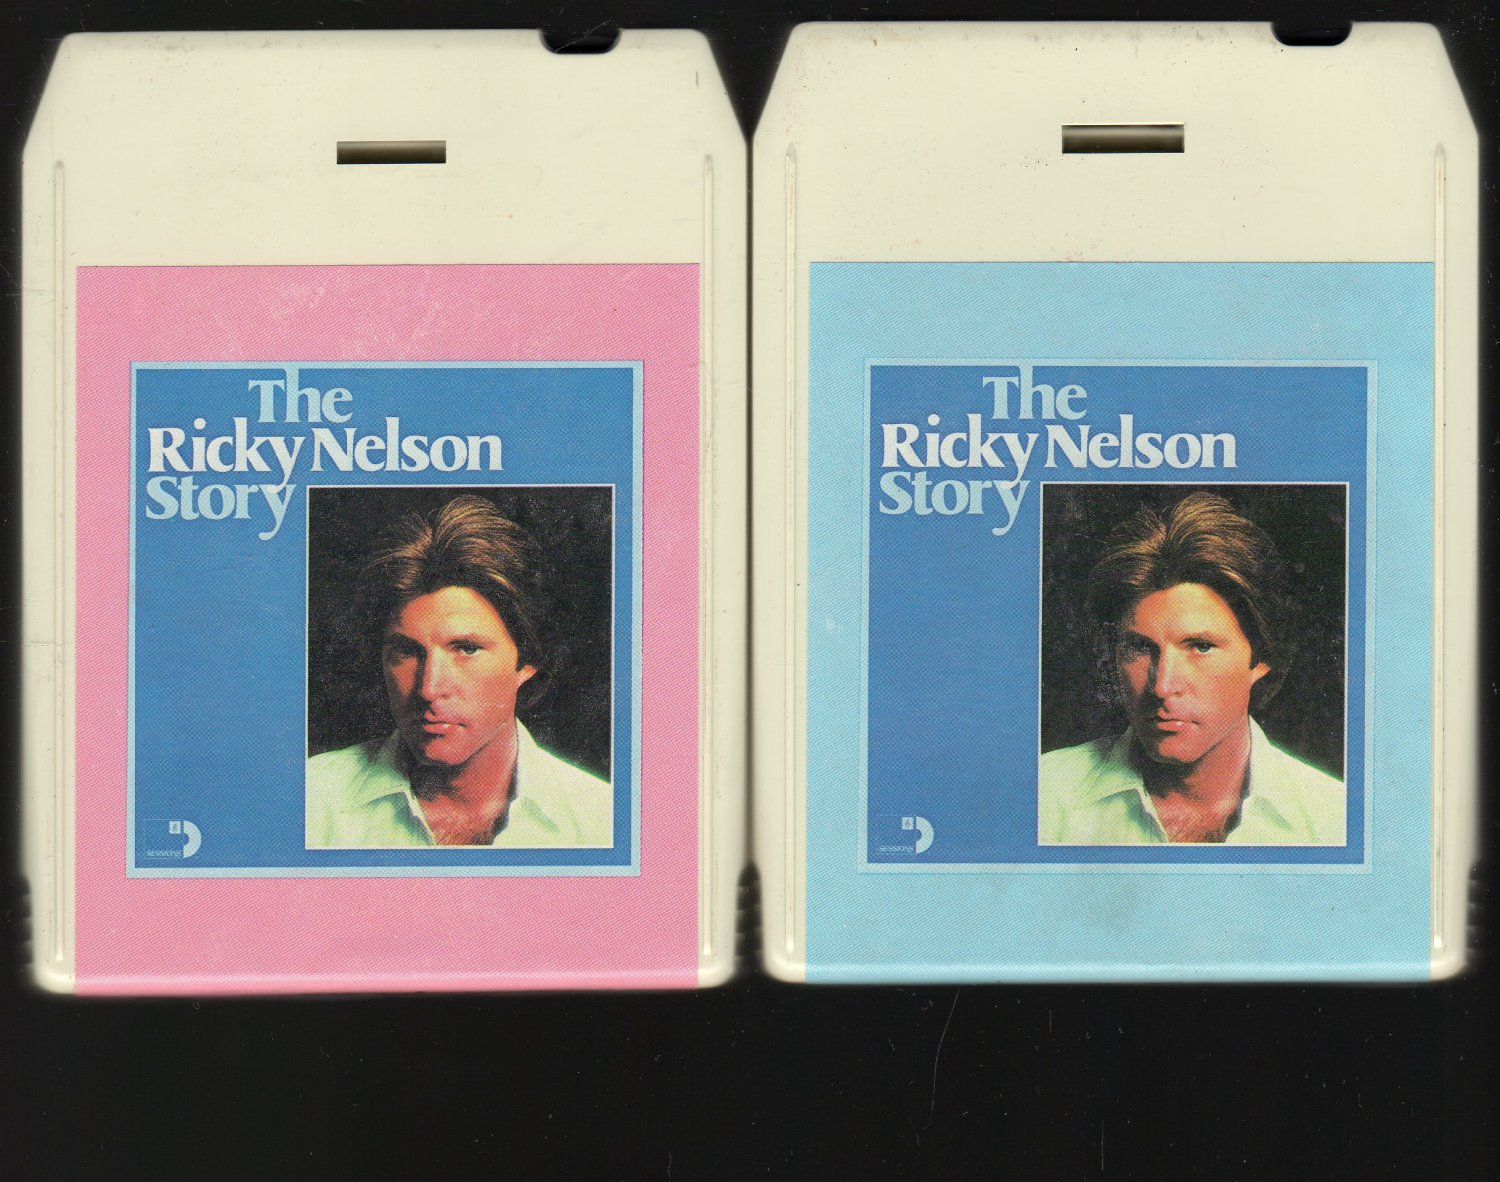 Ricky Nelson - The Ricky Nelson Story Vol 1 & 2 1976 SESSIONS A5 8-track tape